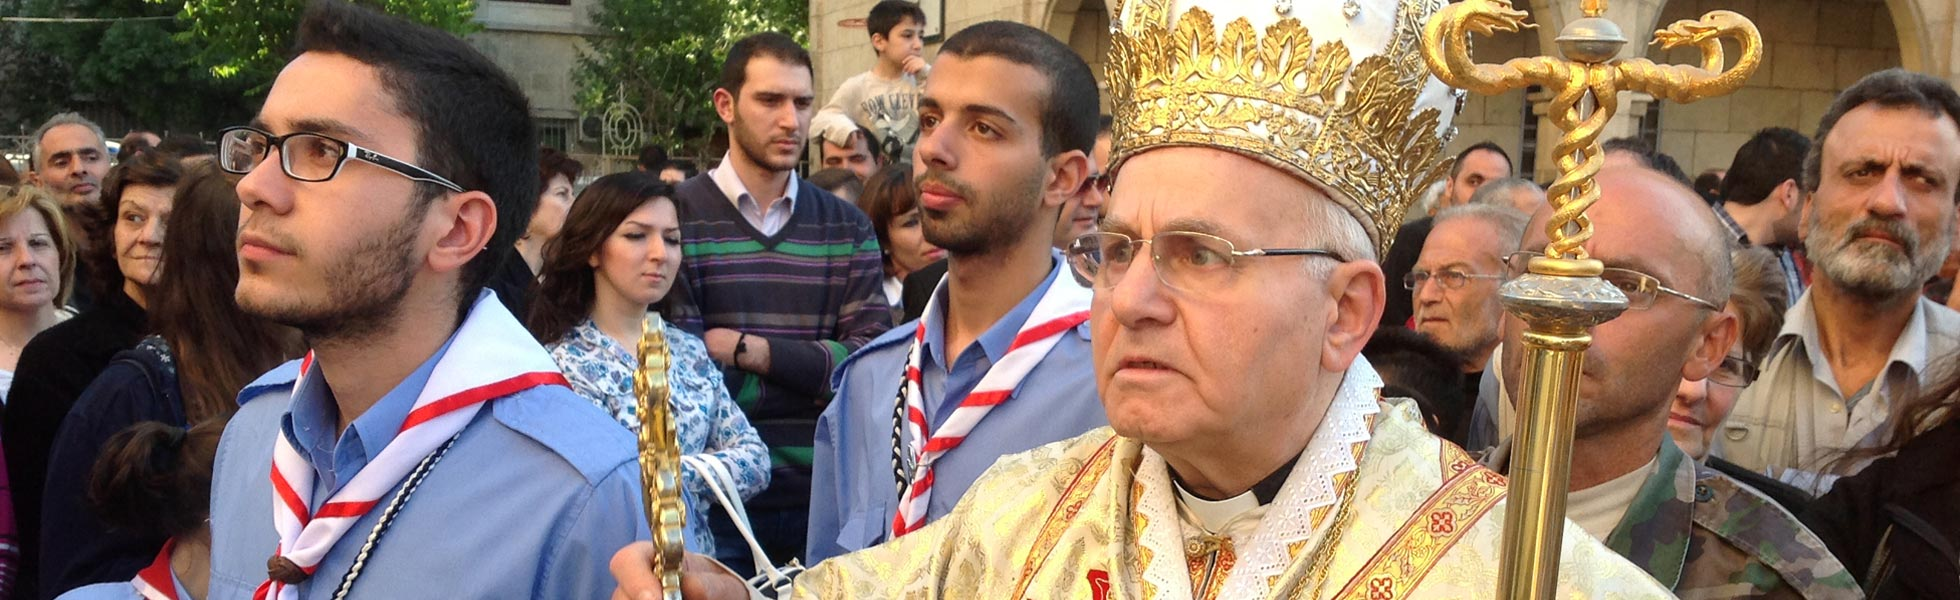 There were 25 of them – a letter by Bishop Jean-Clément Jeanbart of Aleppo